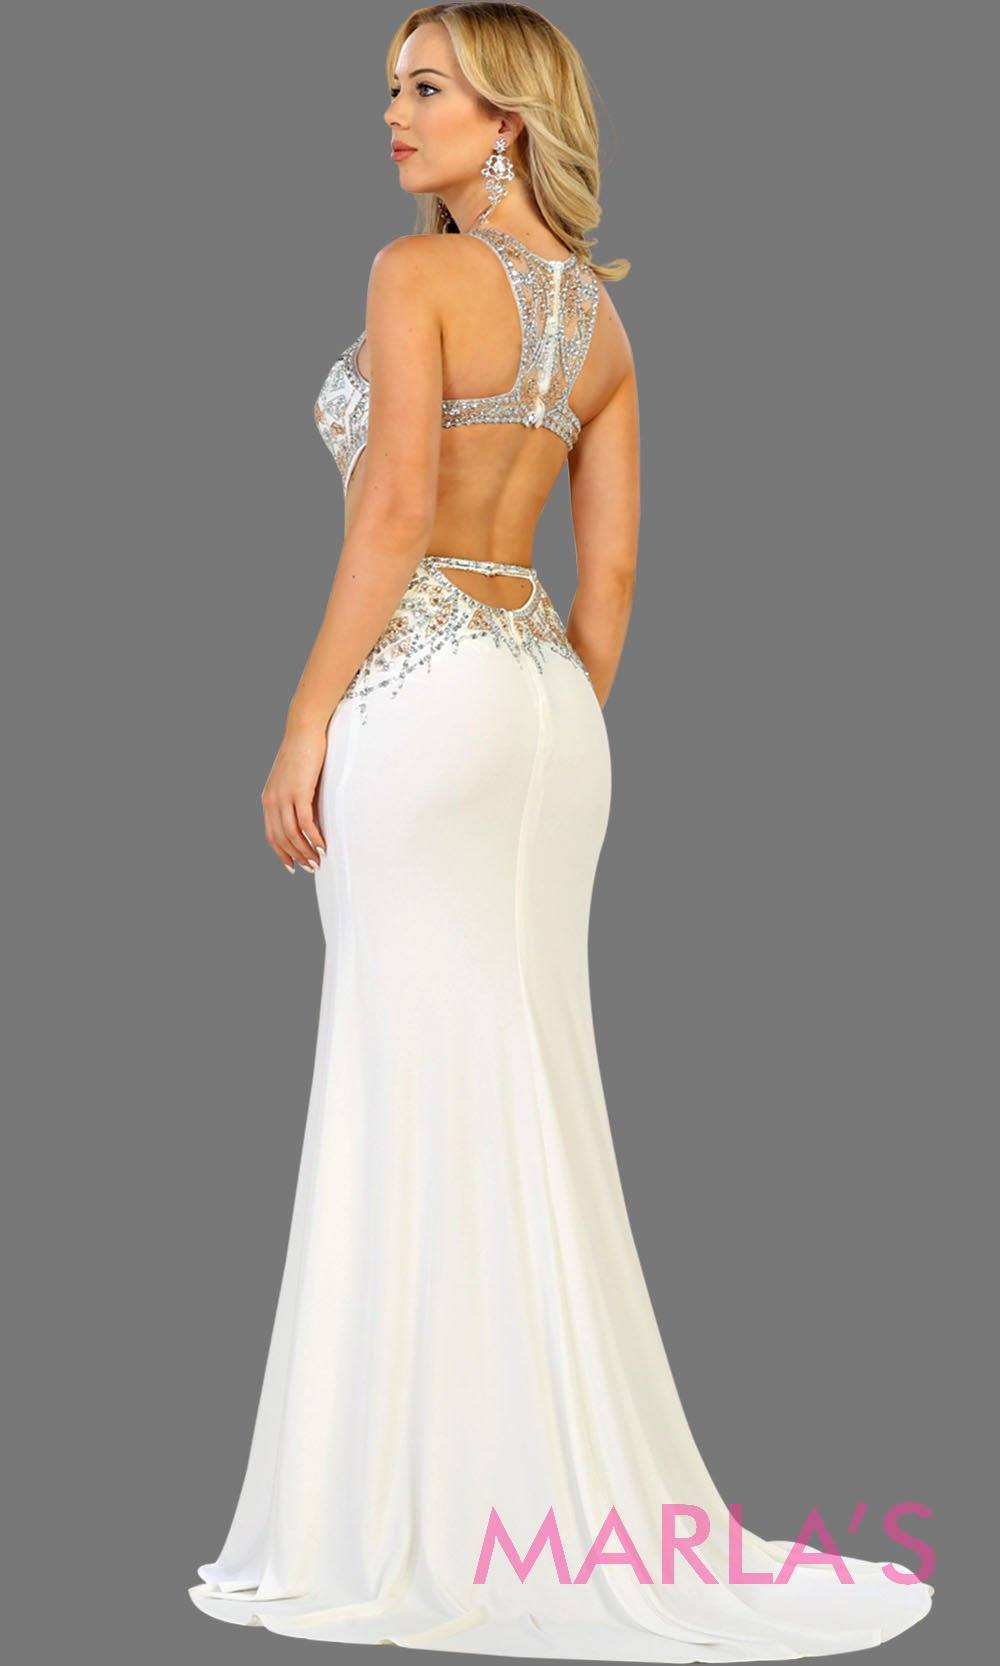 Back of Long white high neck beaded dress with open back. Perfect for modern wedding gown, open back bridal gown,  prom, gala, formal wedding, wedding reception, destination wedding, low back white gown, sleek and sexy dress.